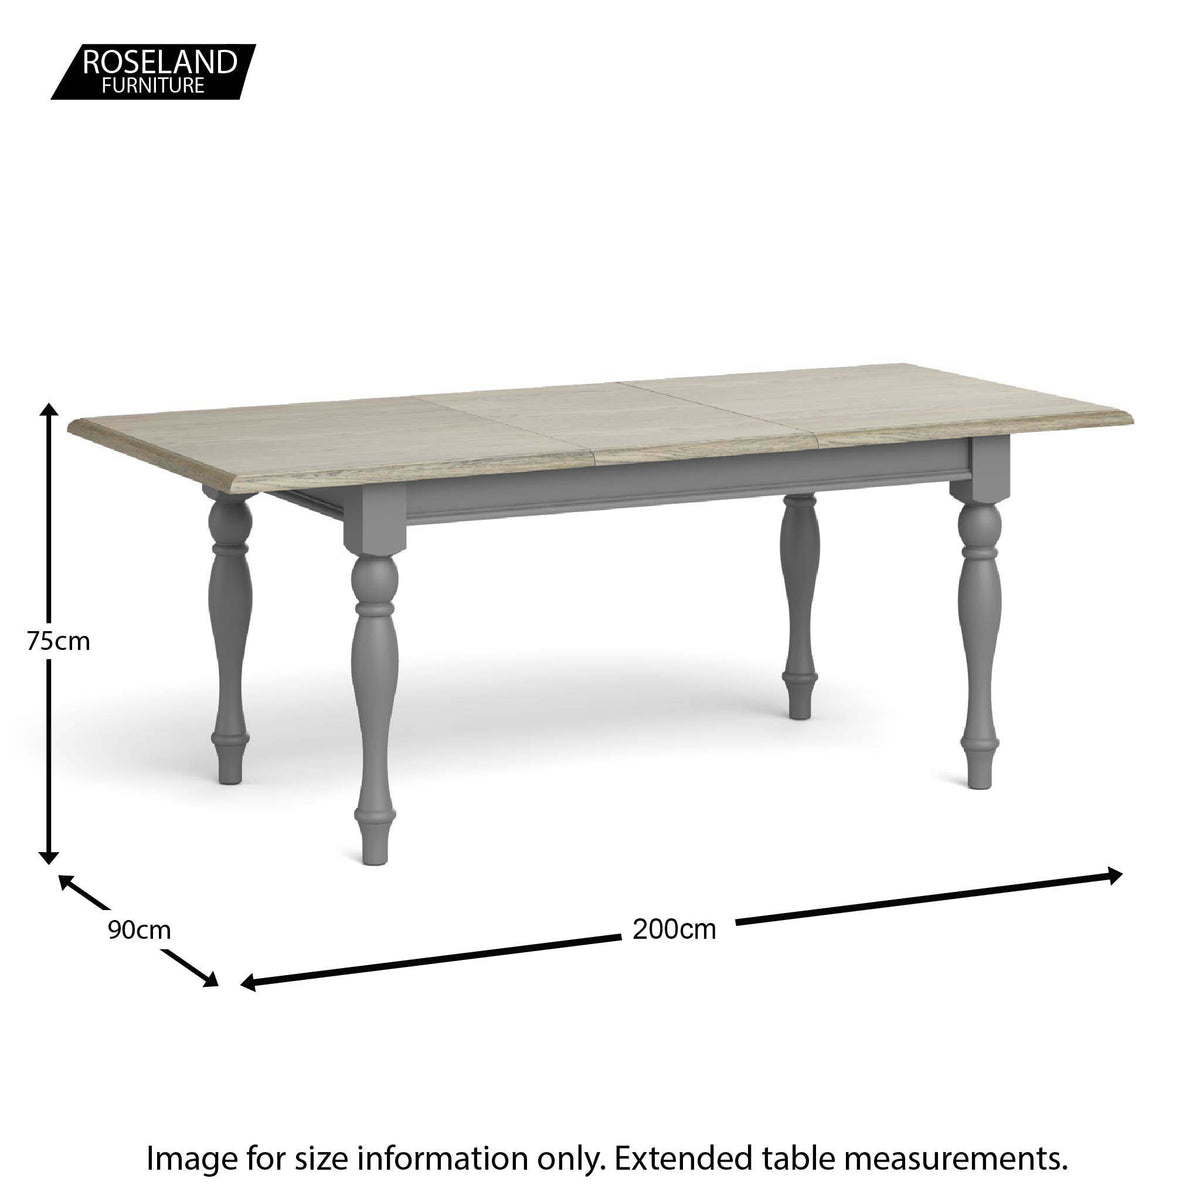 Dimensions for the Extended Mulsanne Grey Dining Table